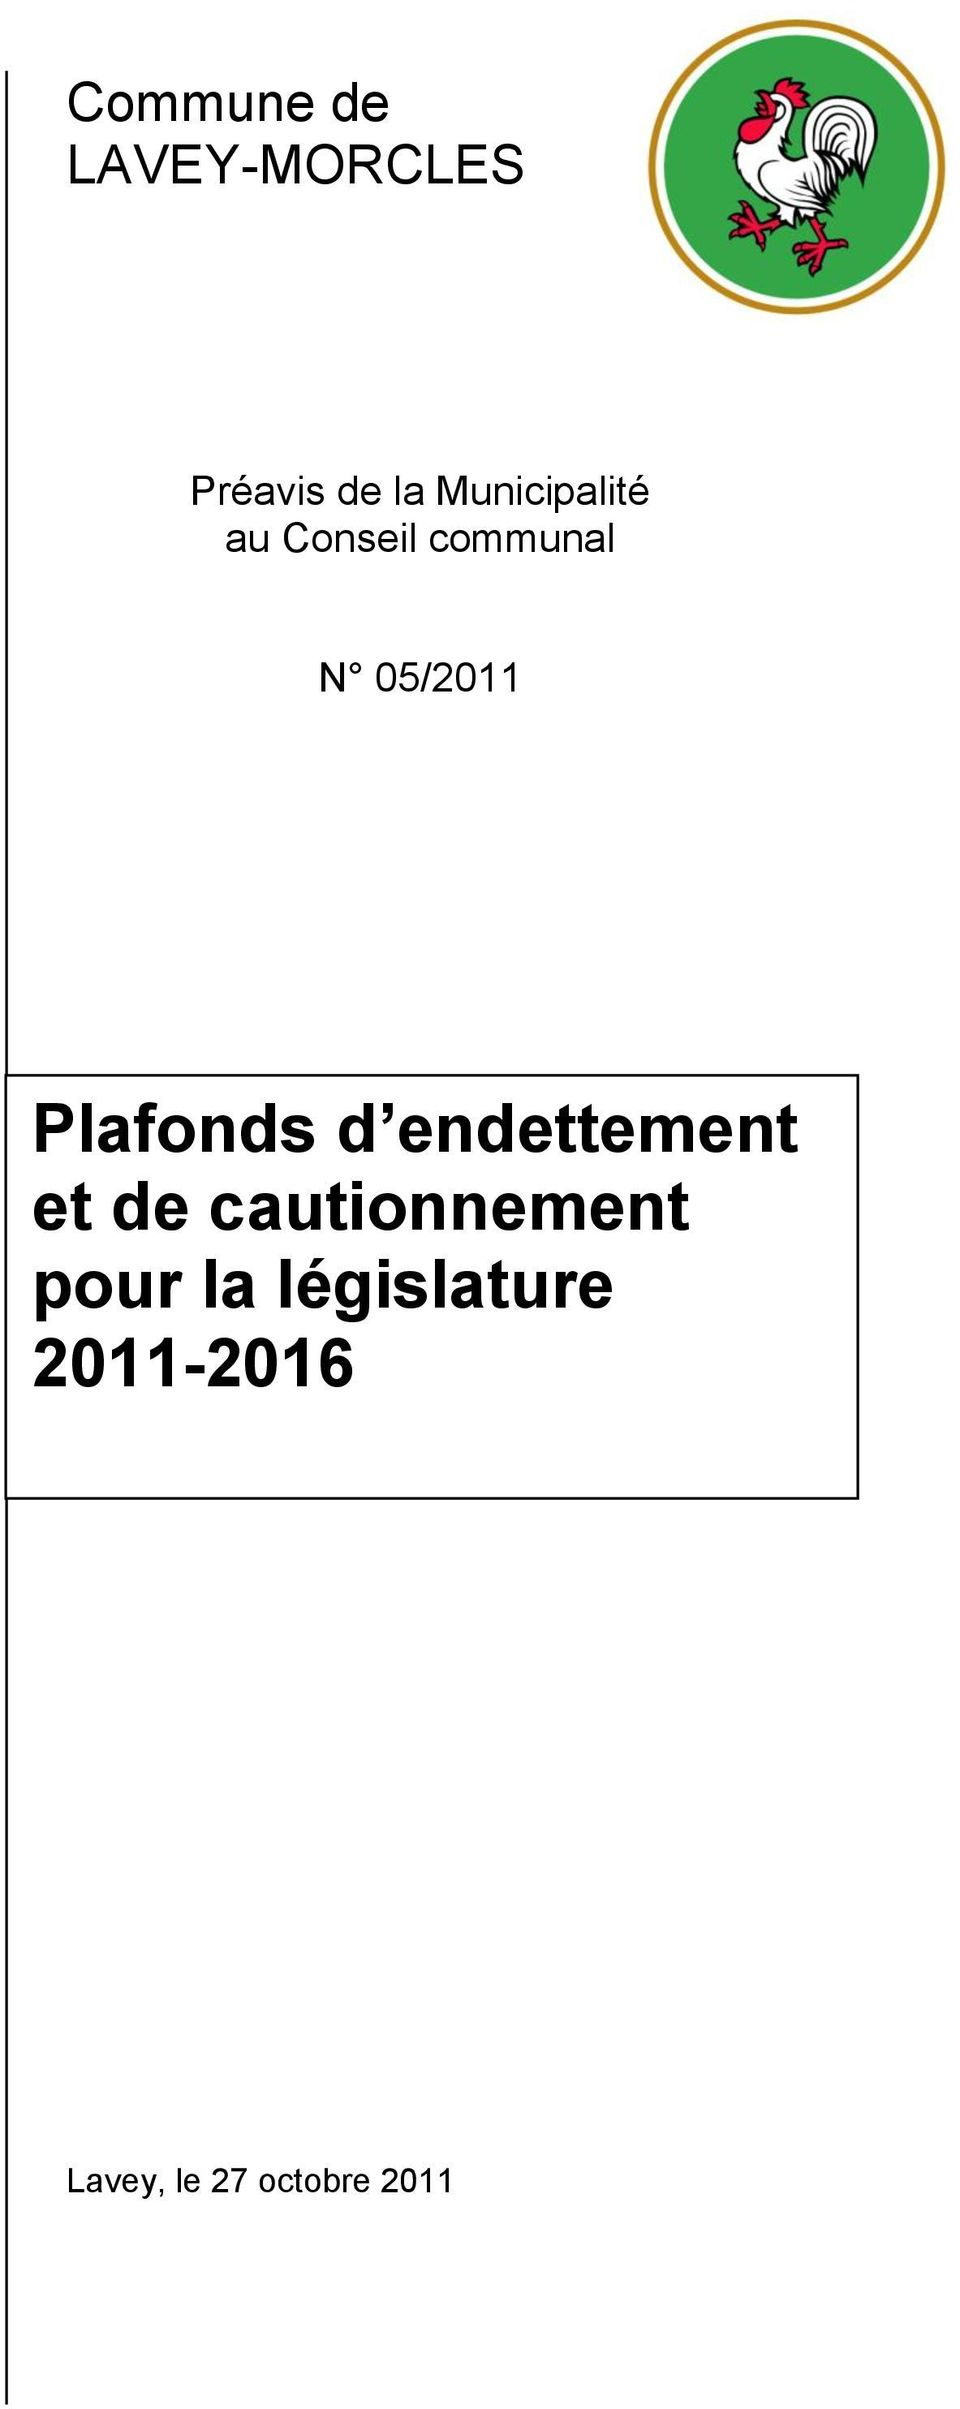 Plafonds d endettement et de cautionnement